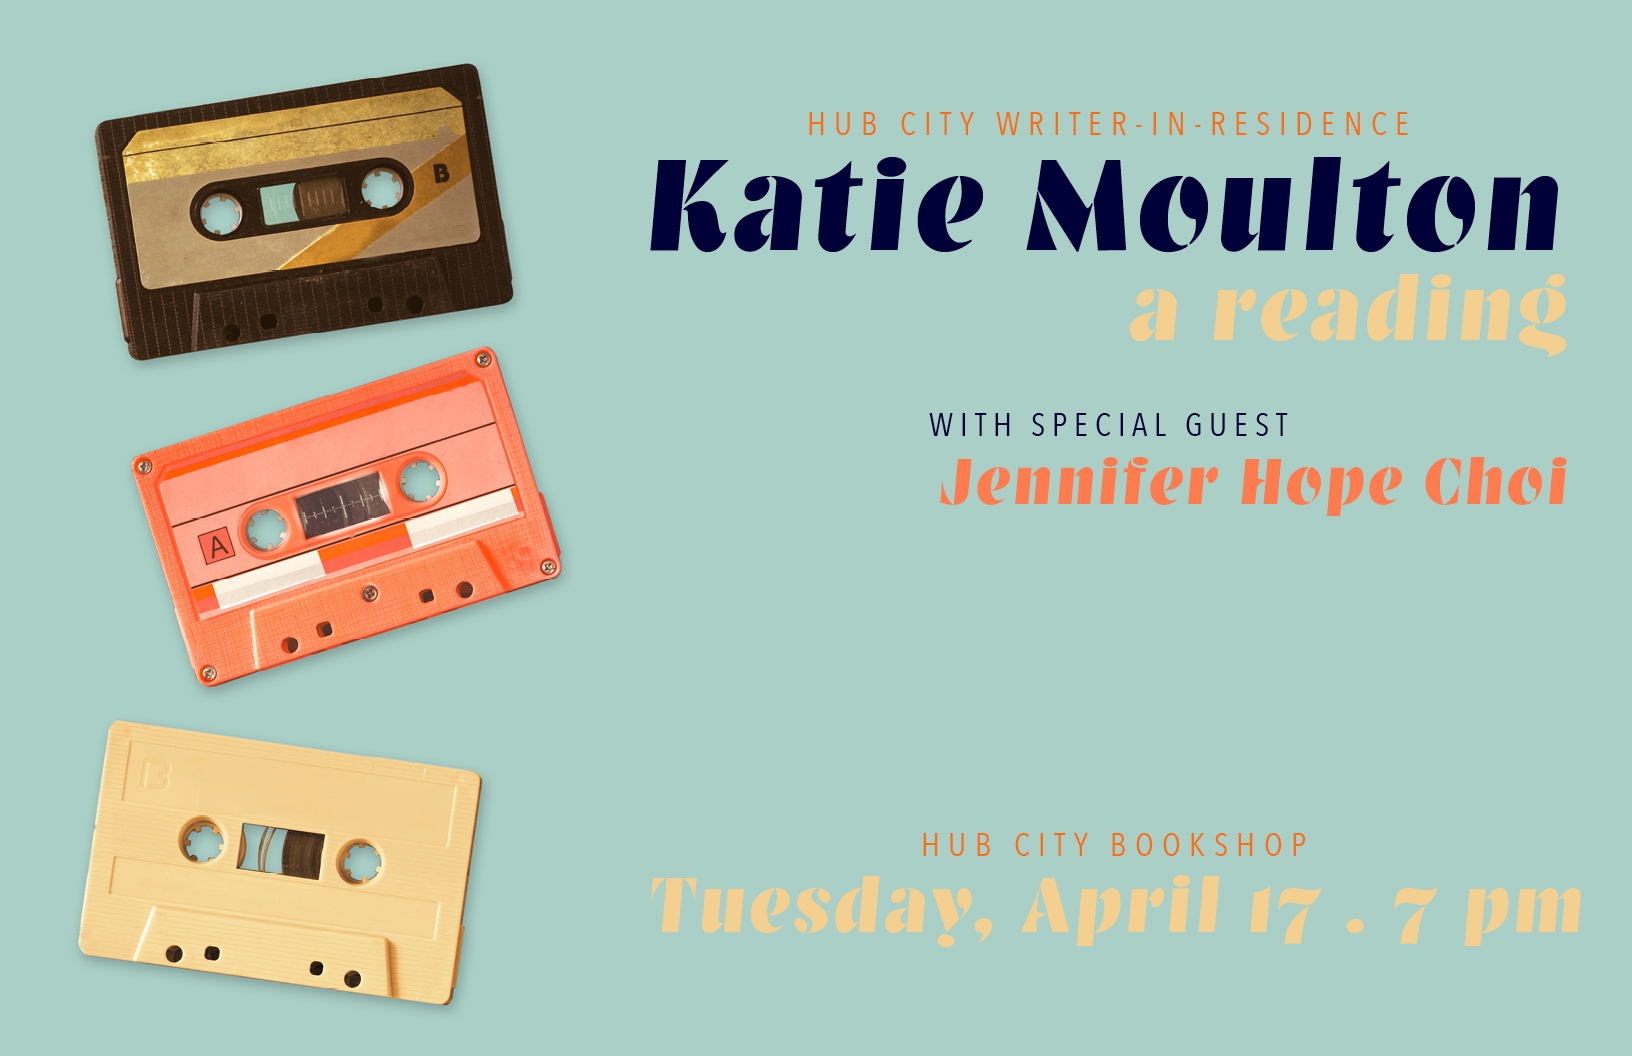 Katie Moulton reading poster.jpg